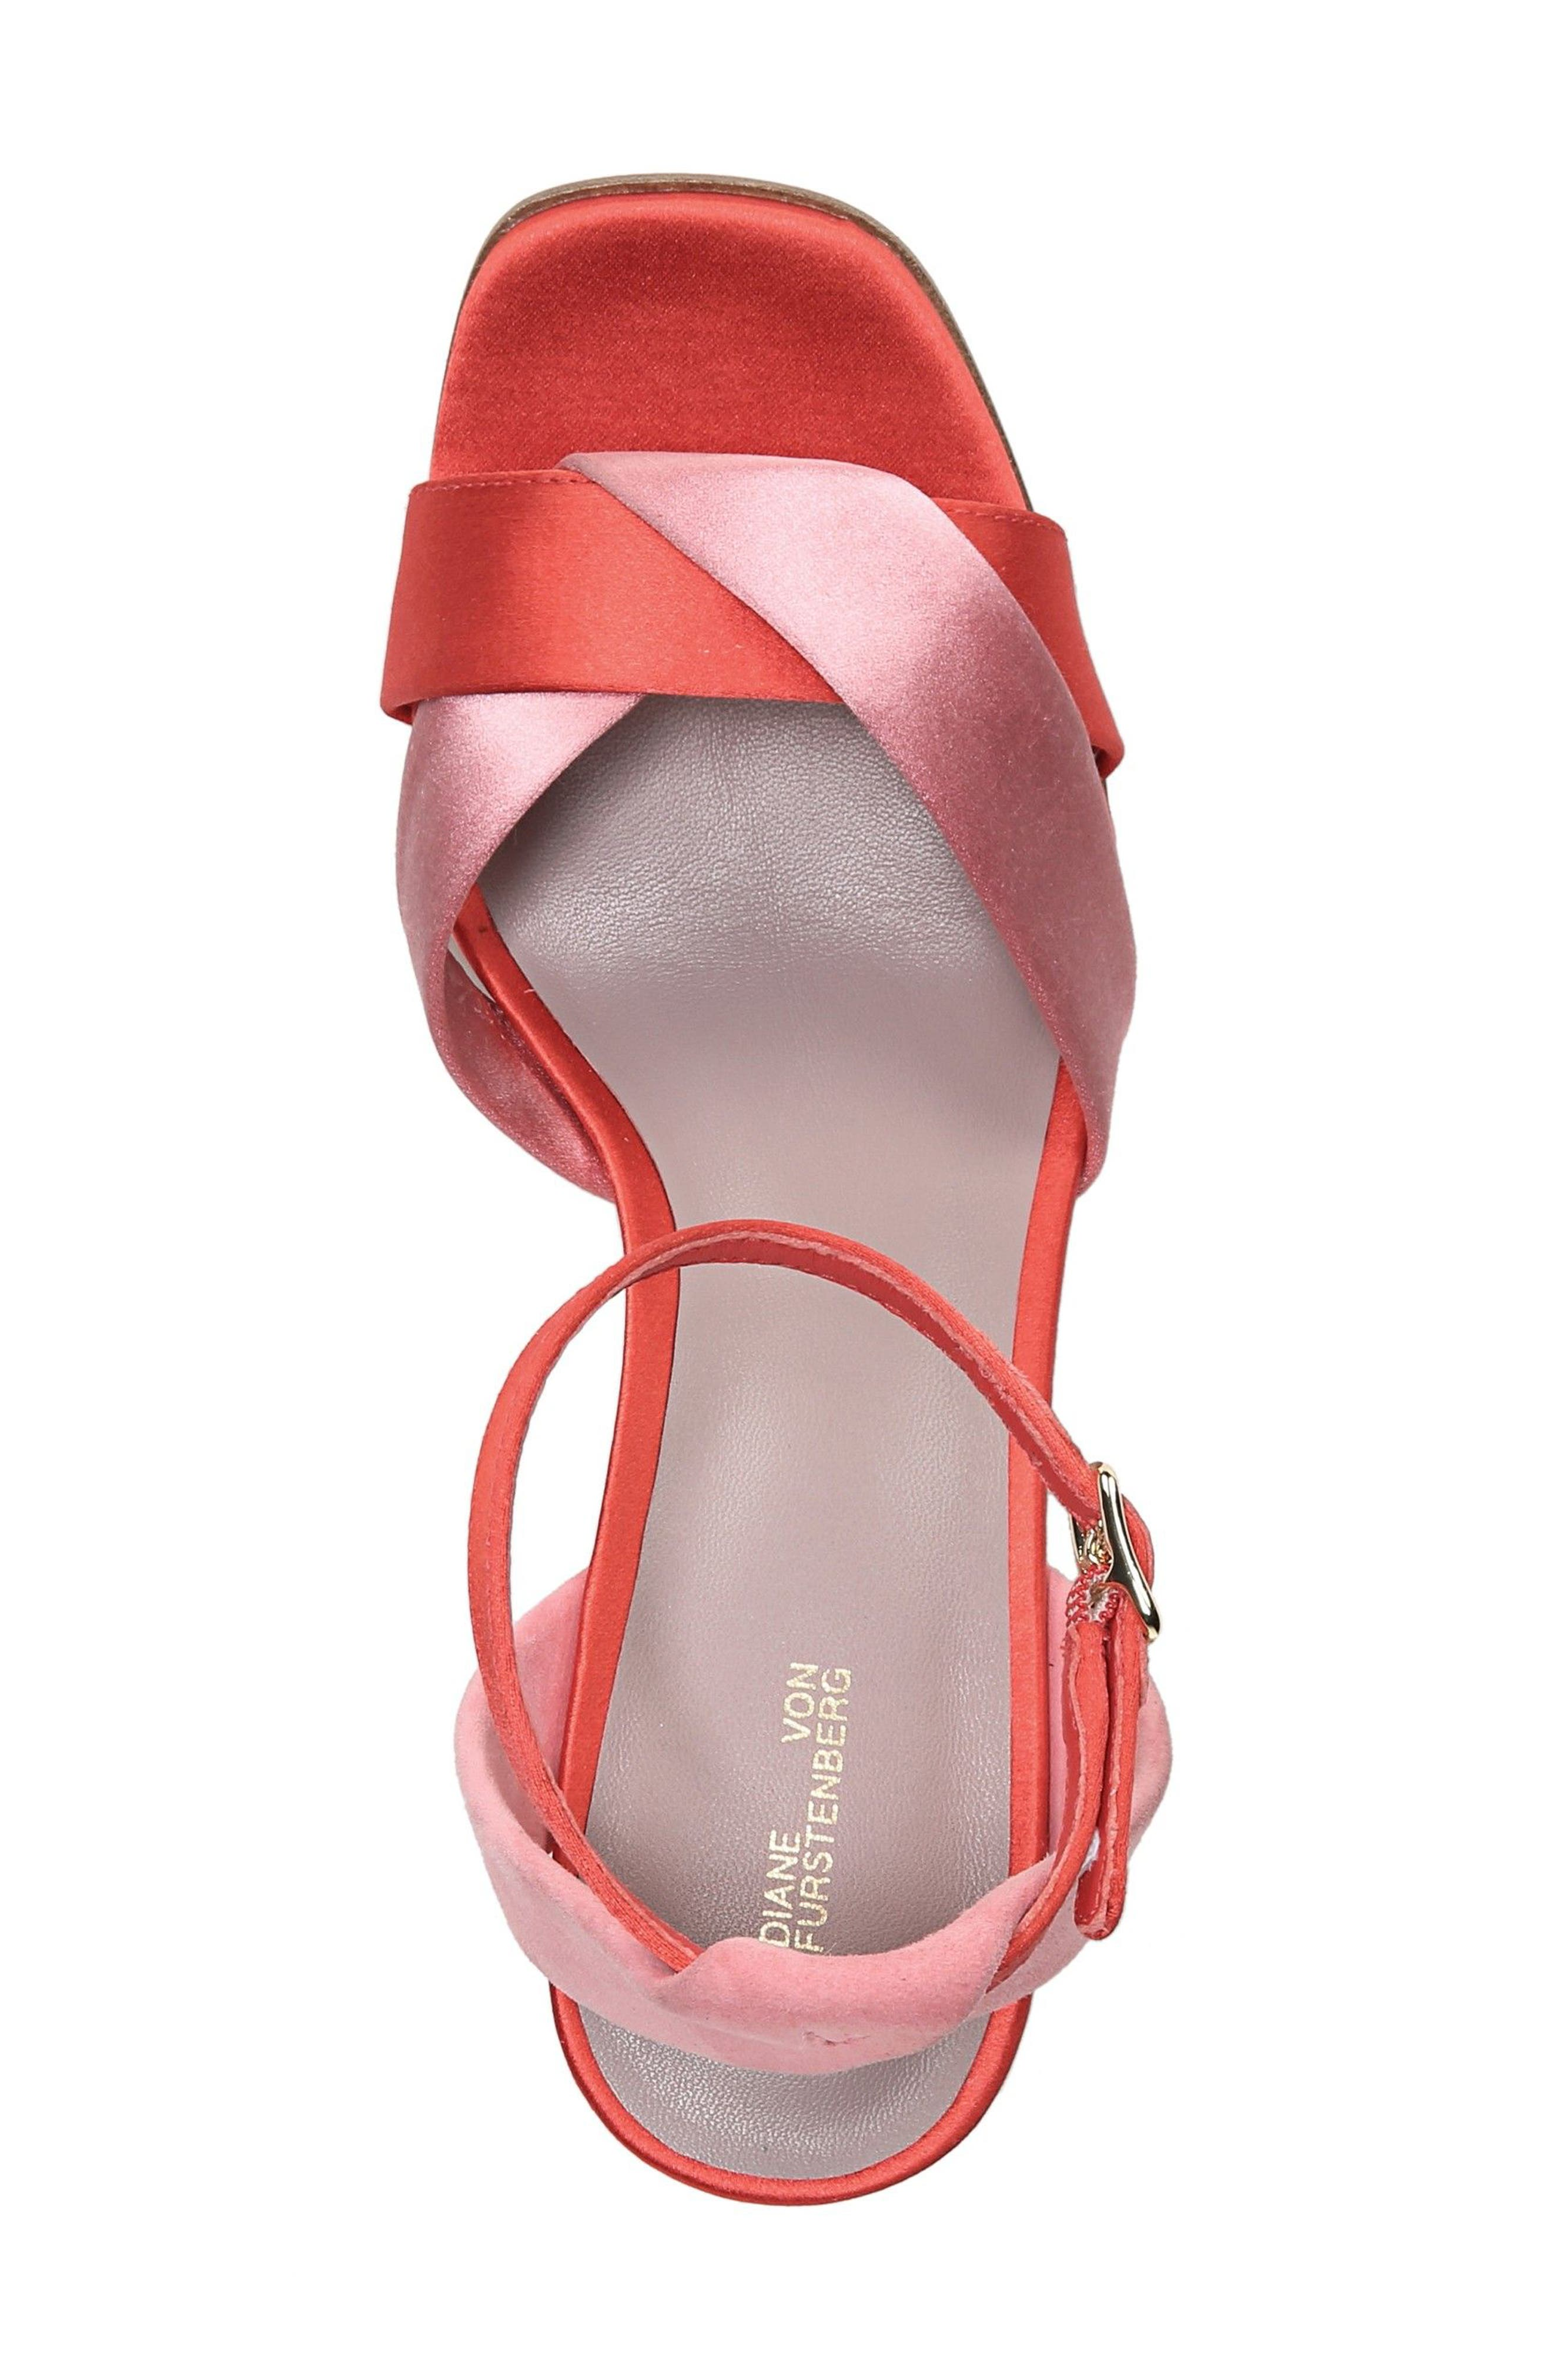 Fiona Strappy Sandal,                             Alternate thumbnail 5, color,                             650